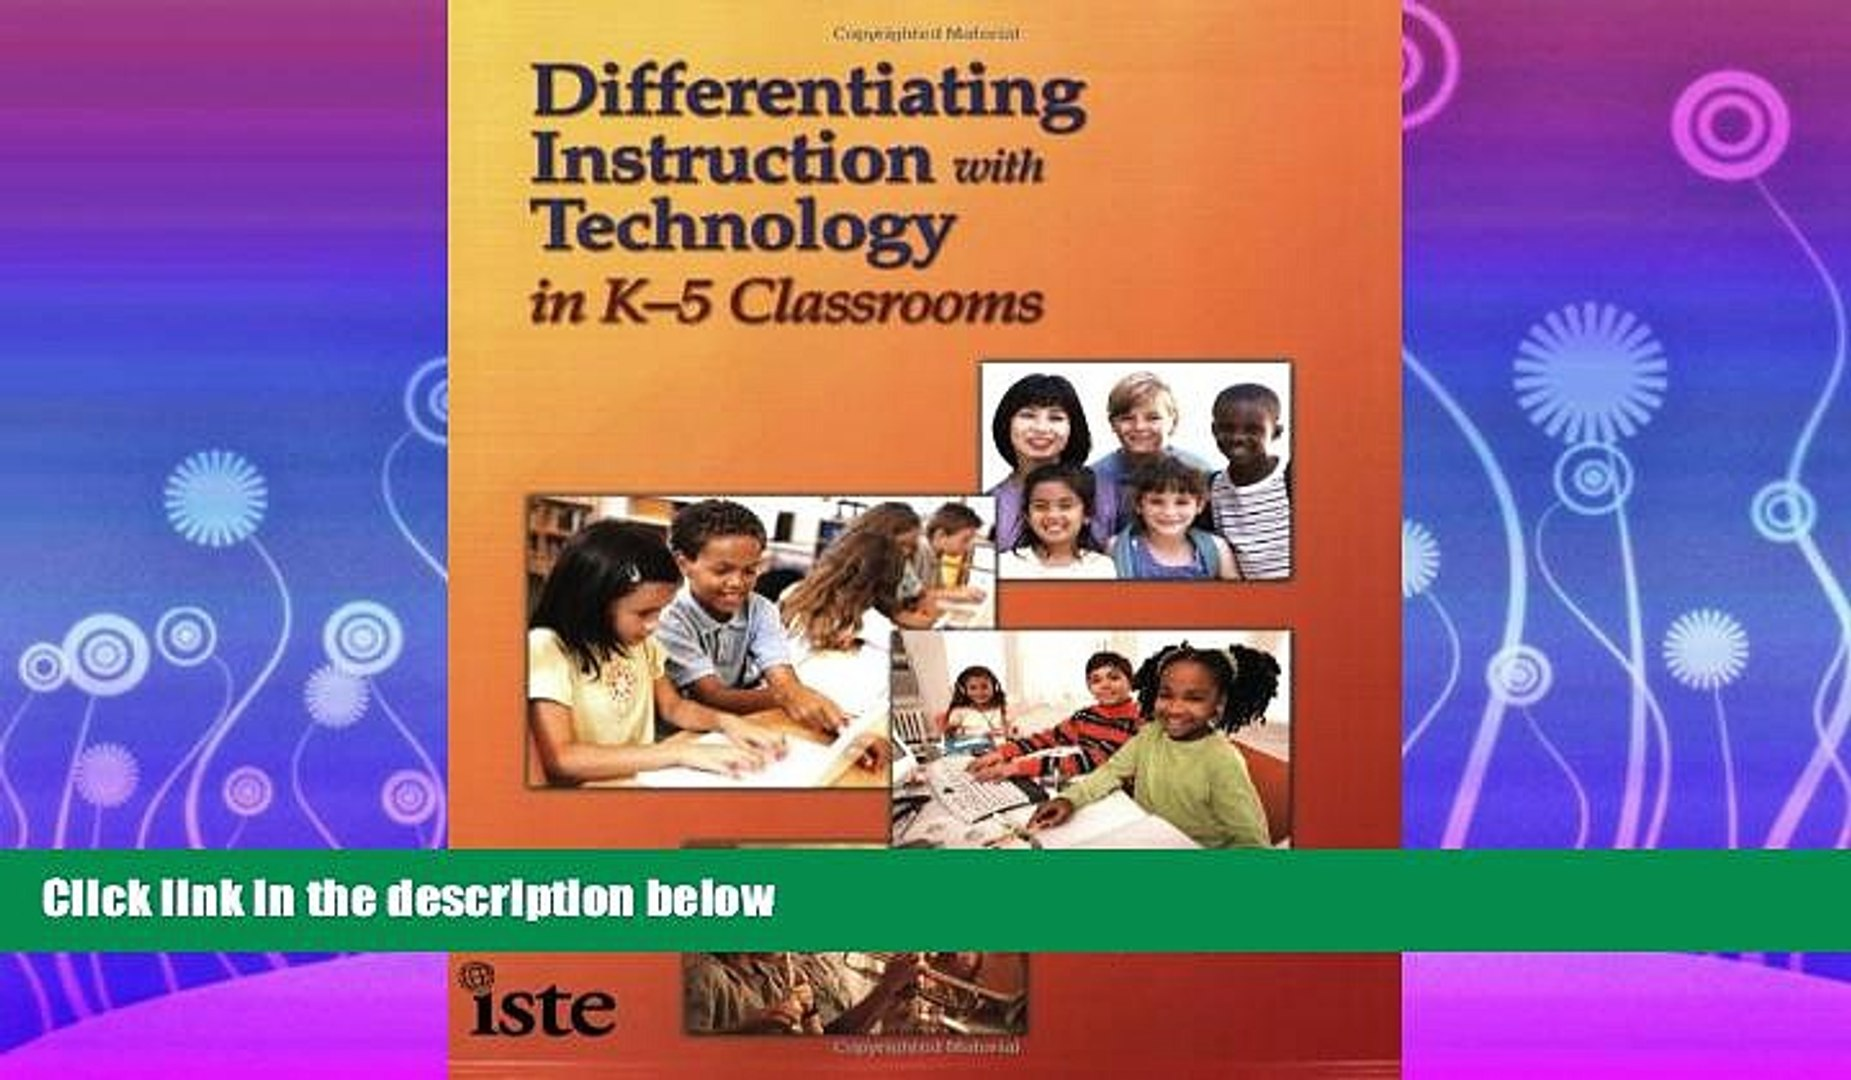 Differentiating Instruction with Technology in K-5 Classrooms